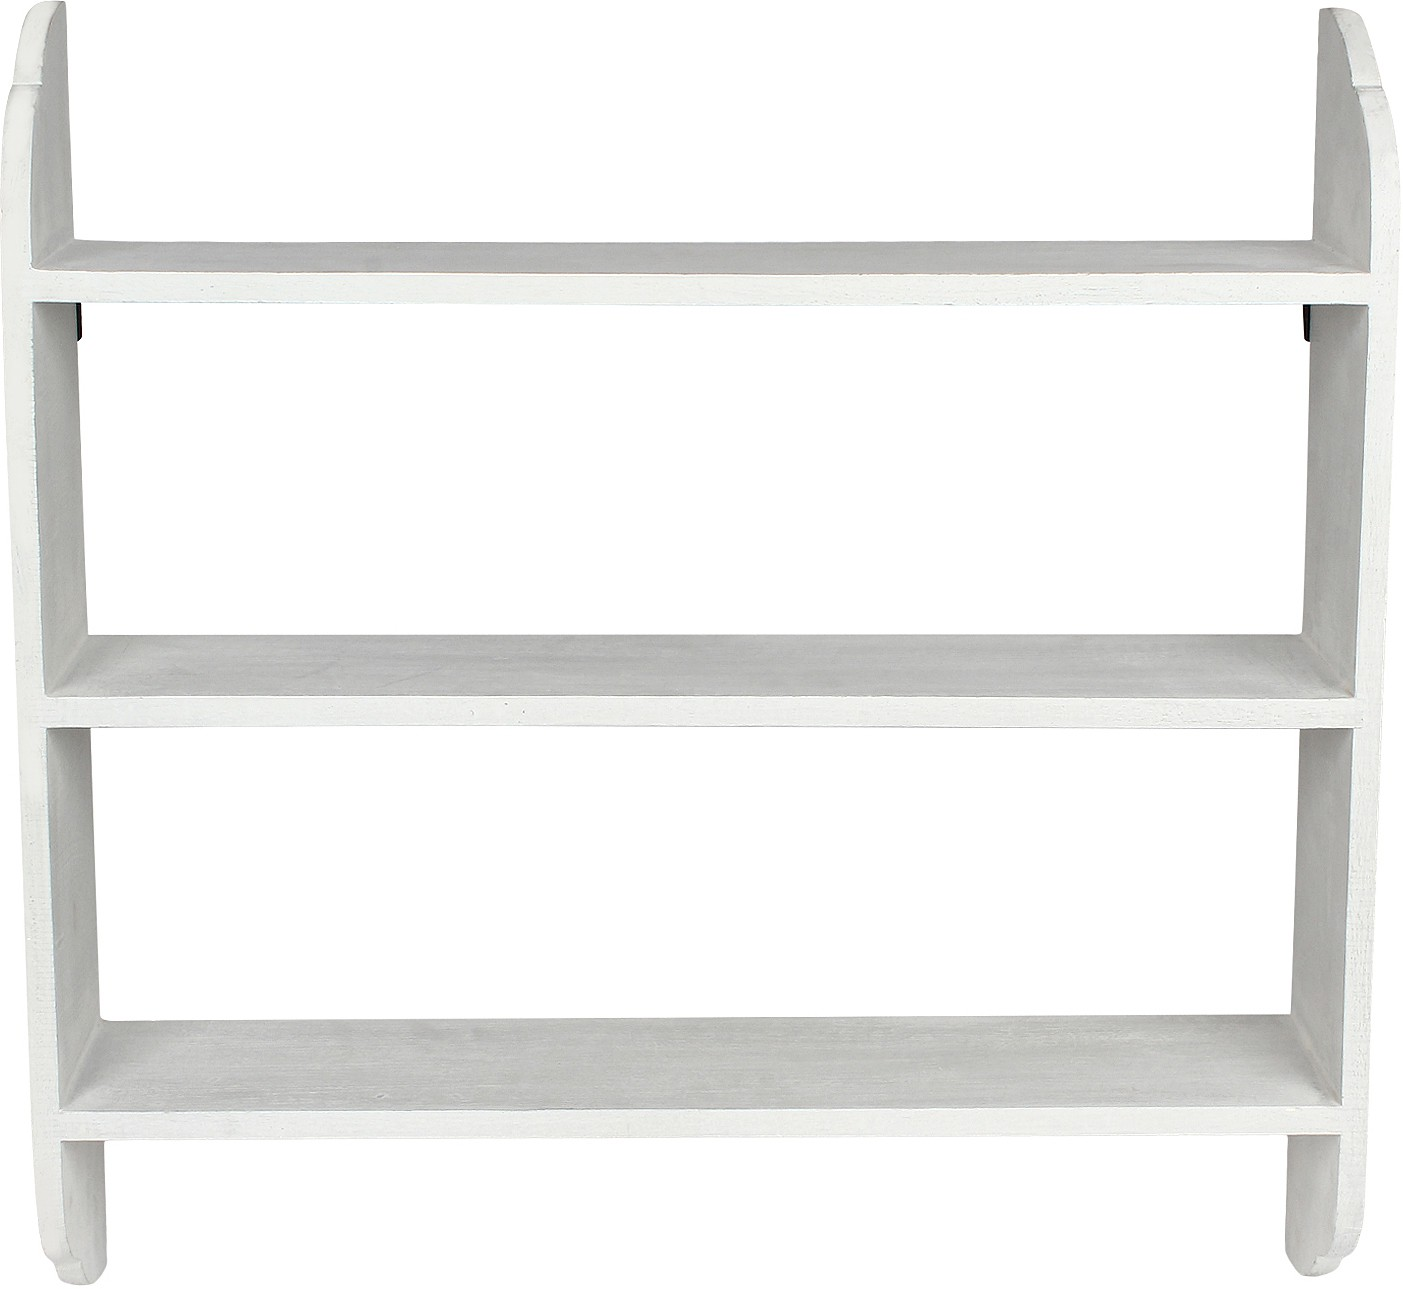 View The Decor Mart Wooden Wall Shelf(Number of Shelves - 3) Furniture (The Decor Mart)